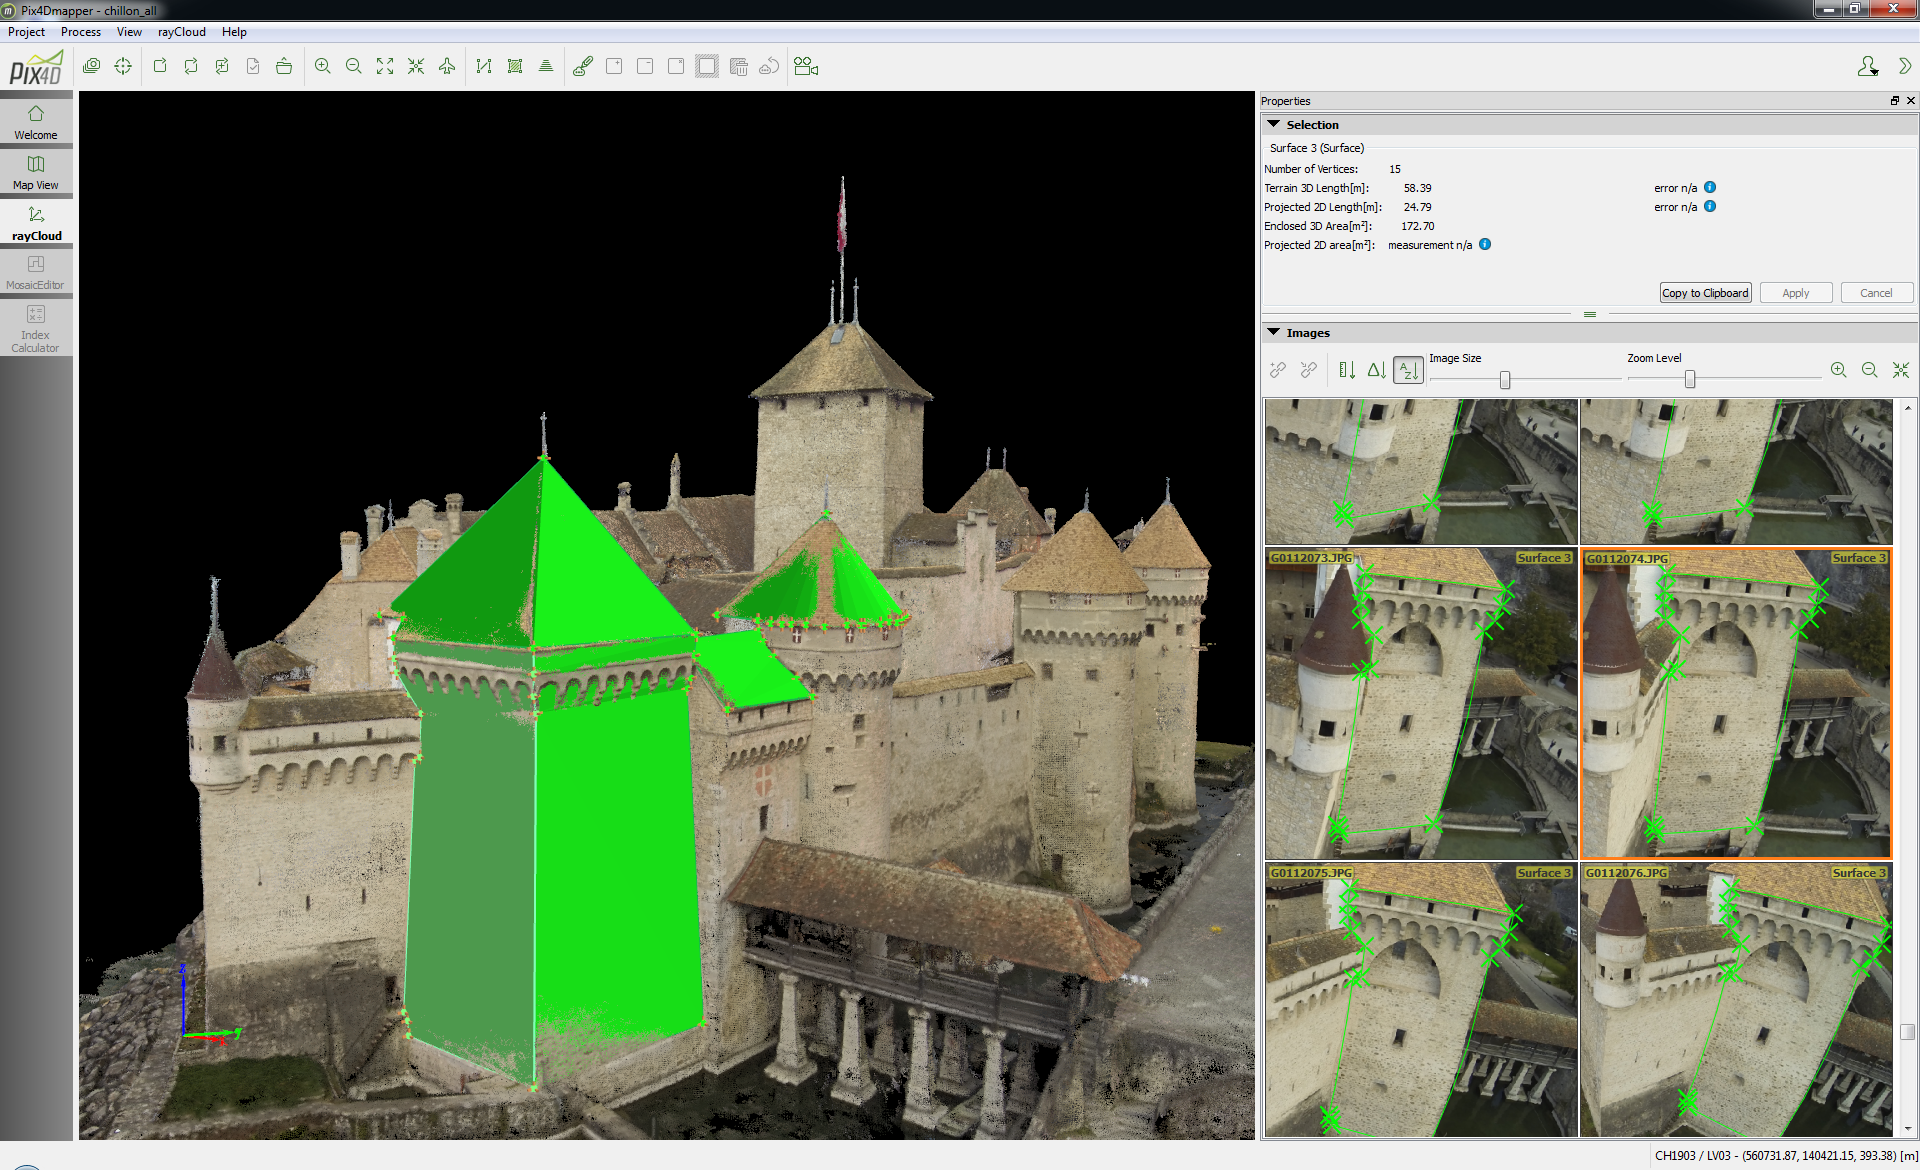 Working with Chillon castle in Pix4Dmapper